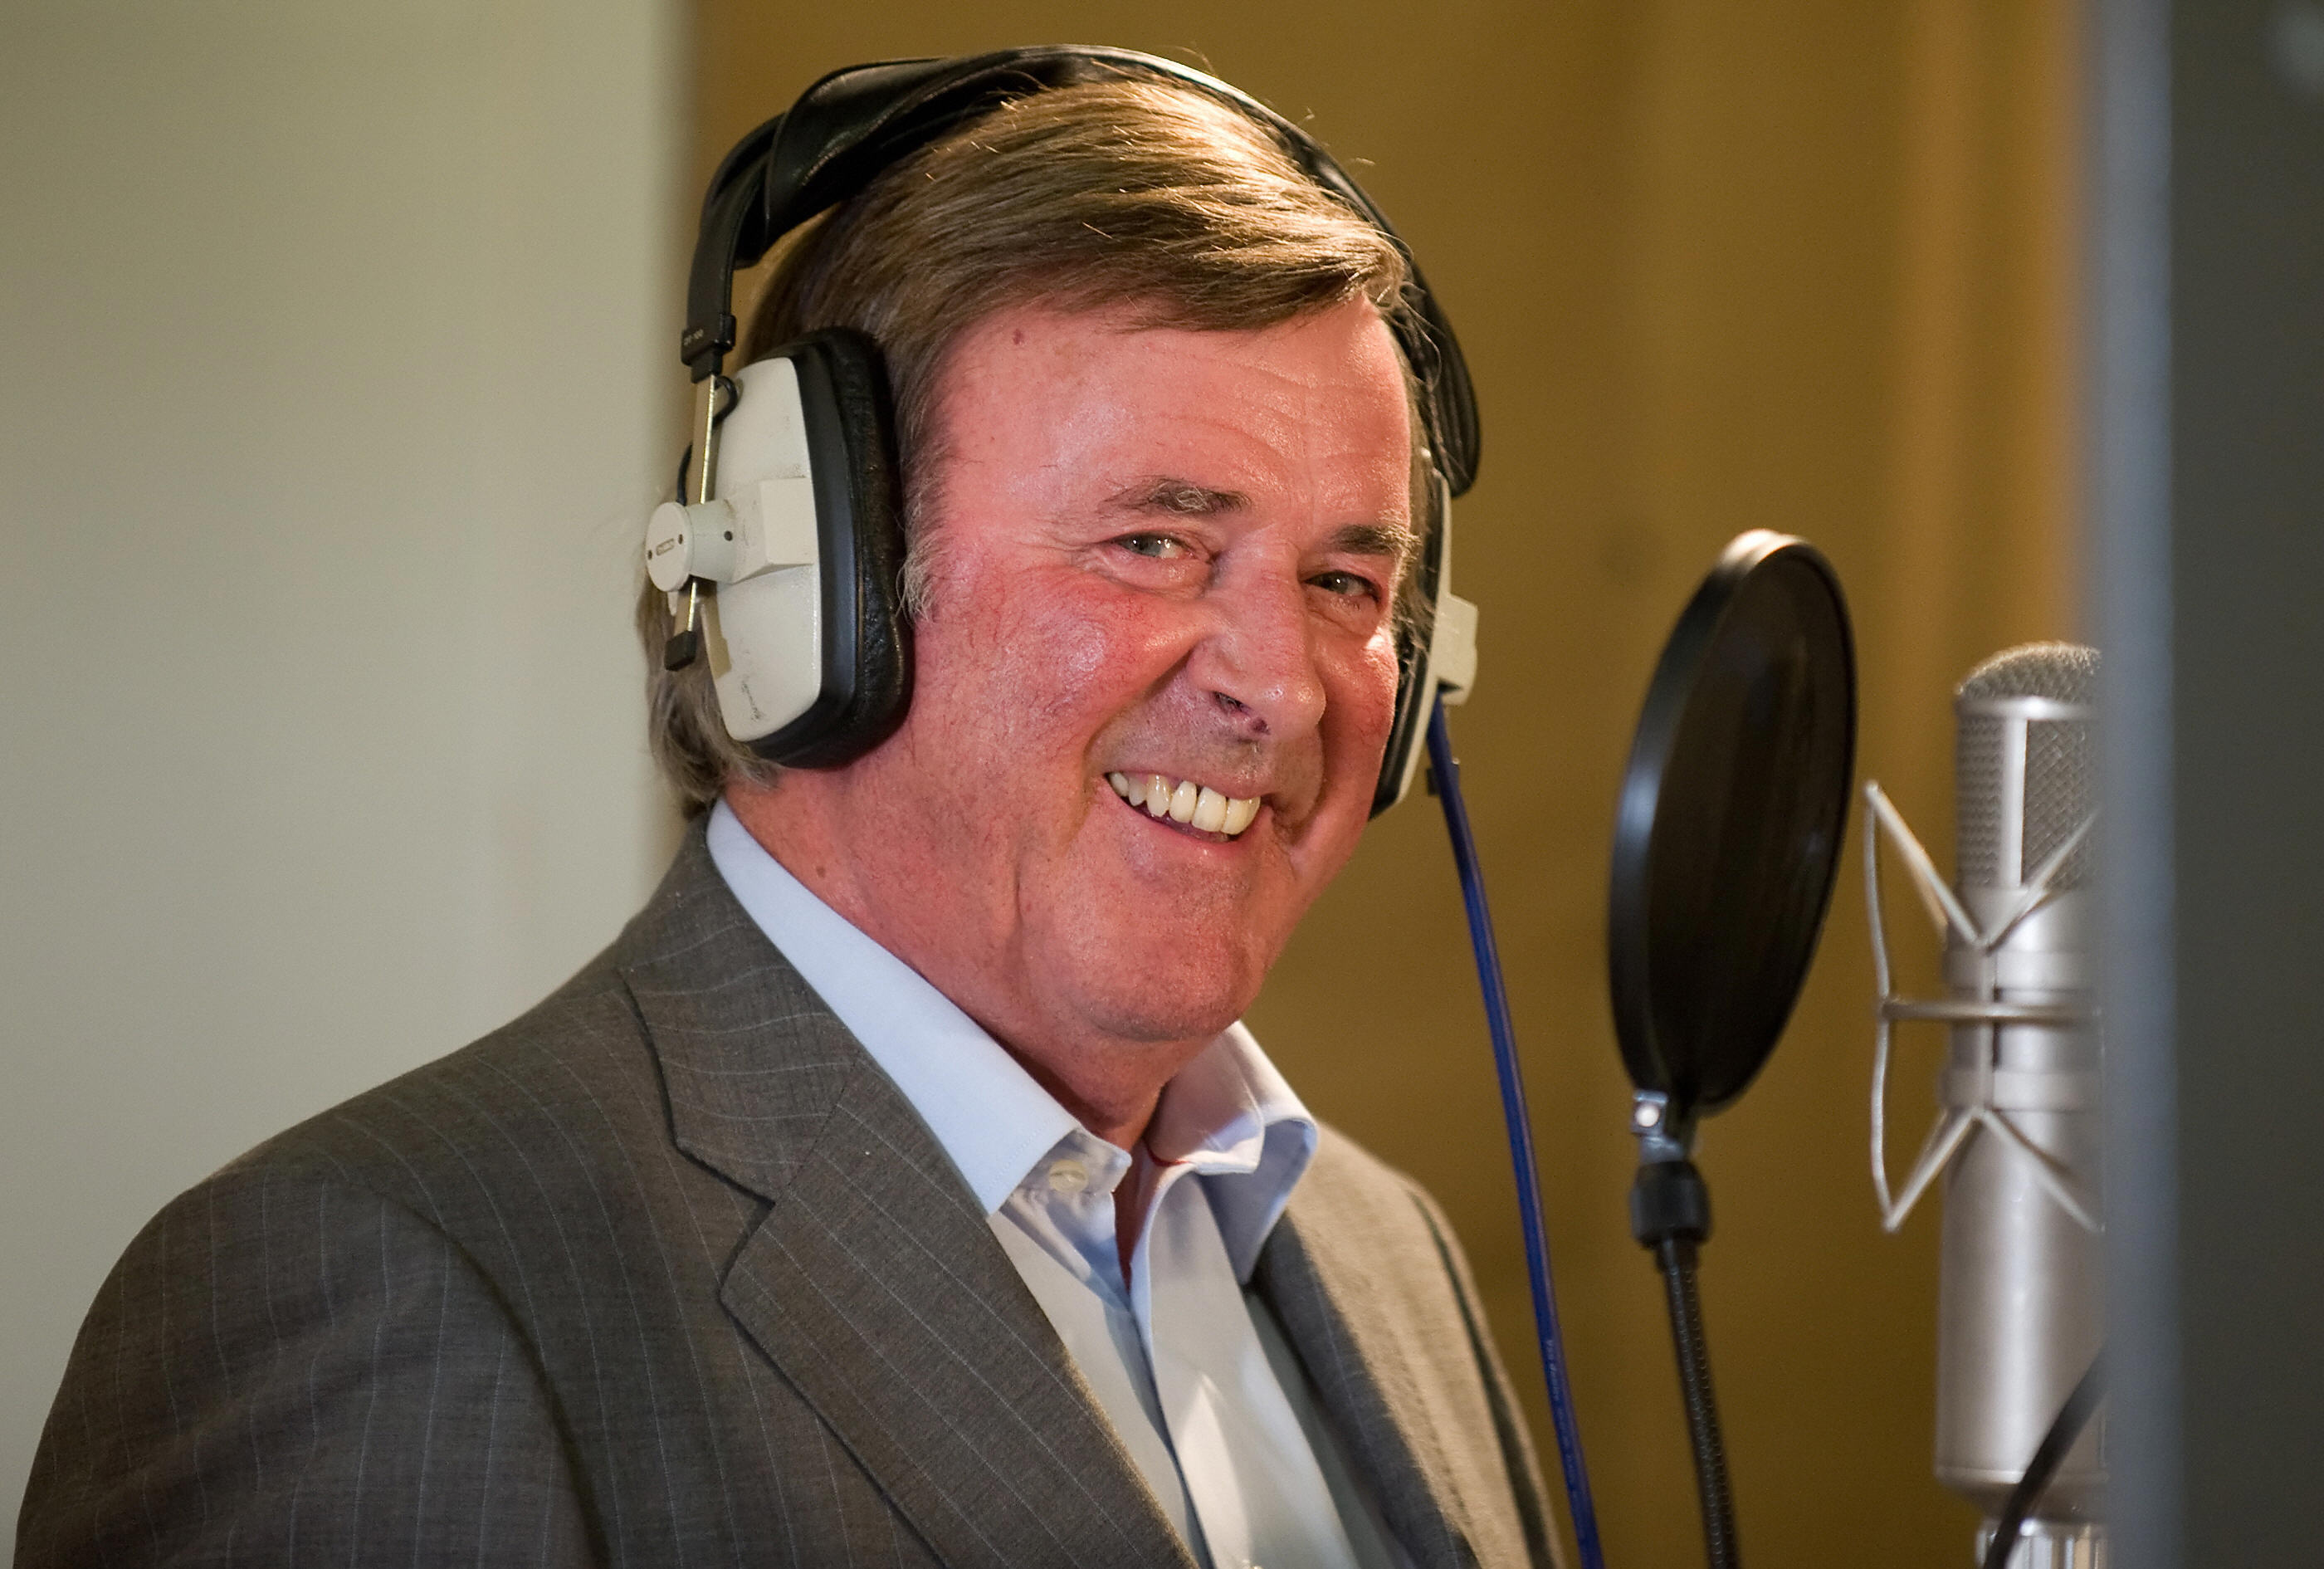 BBC defend Terry Wogan's 'unique brand of humour' after Eurovision chief said he 'ruined the show'